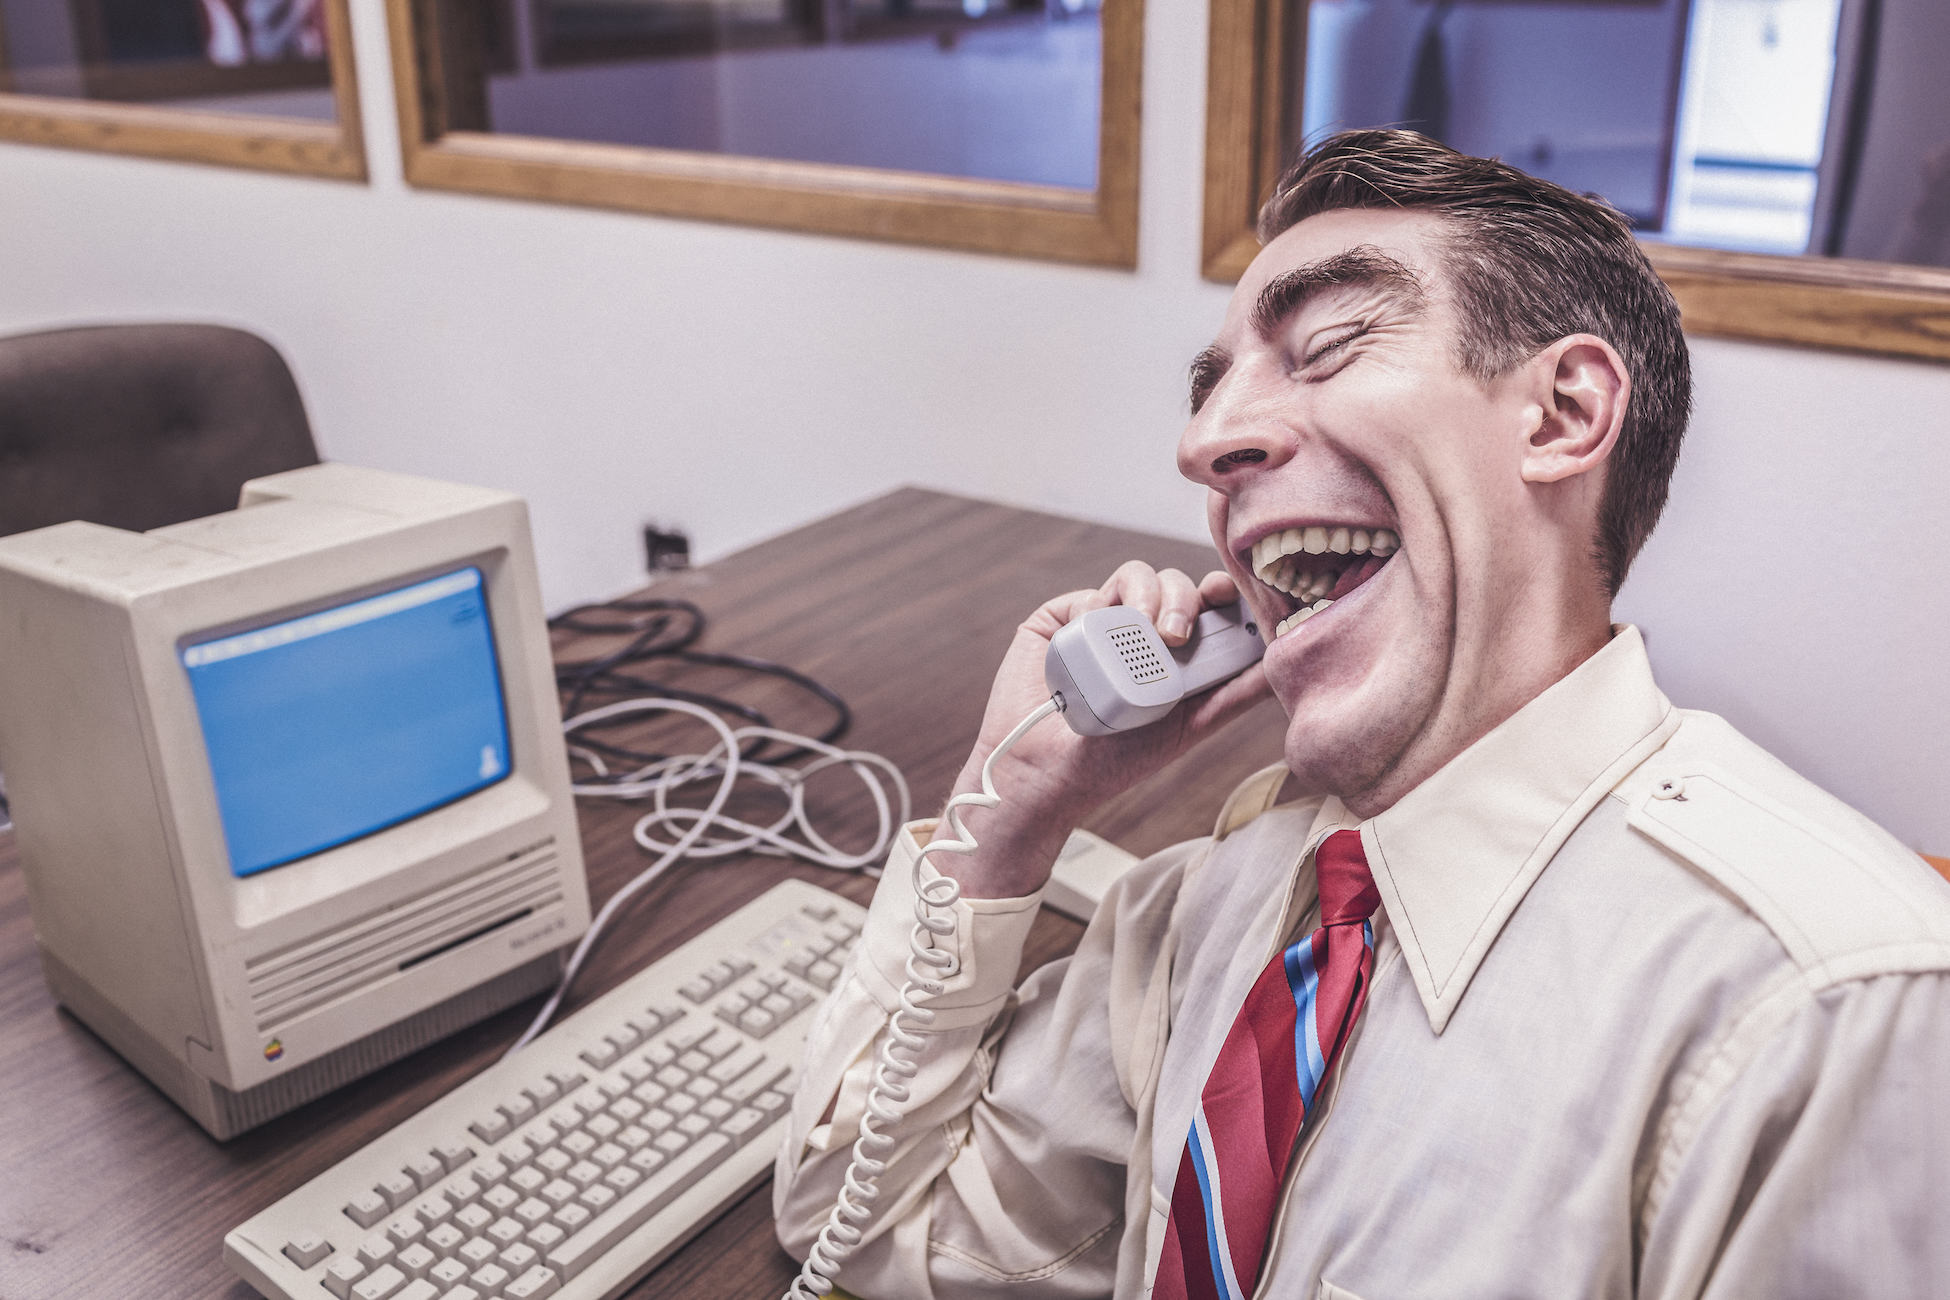 comical photo depicting guy working from 1970s office